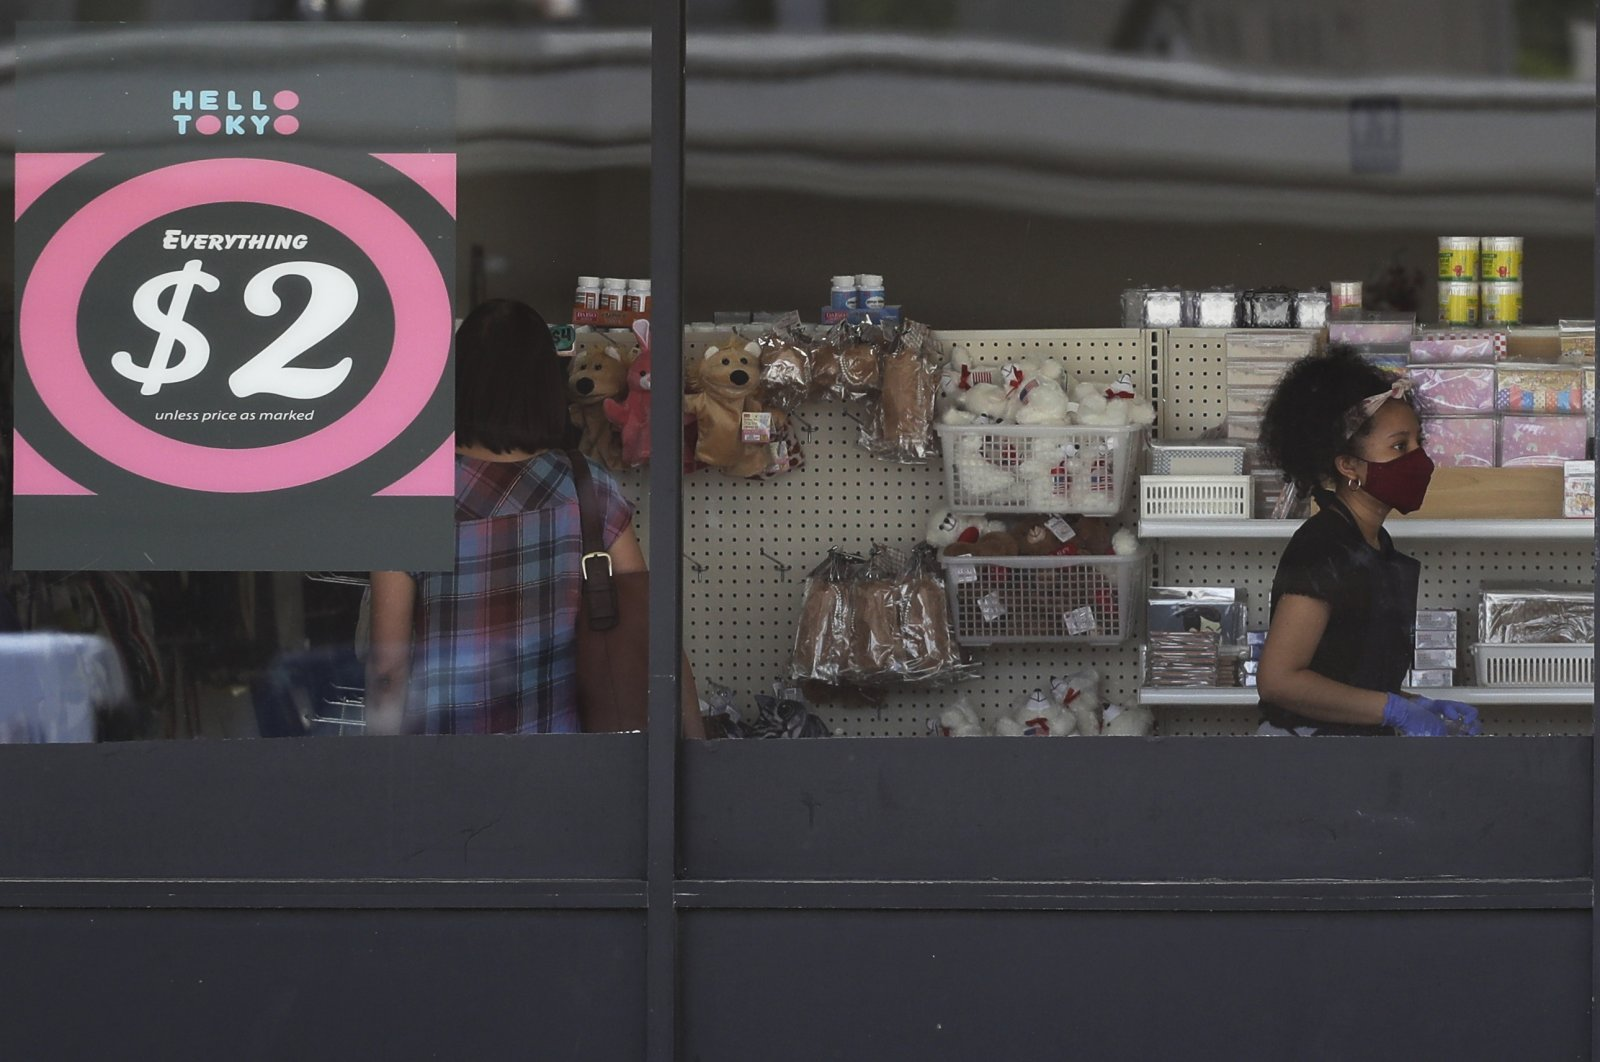 In this June 25, 2020, file photo, a price sign is displayed at a retail store as a store employee wears a mask while working in Niles, Ill. (AP Photo)